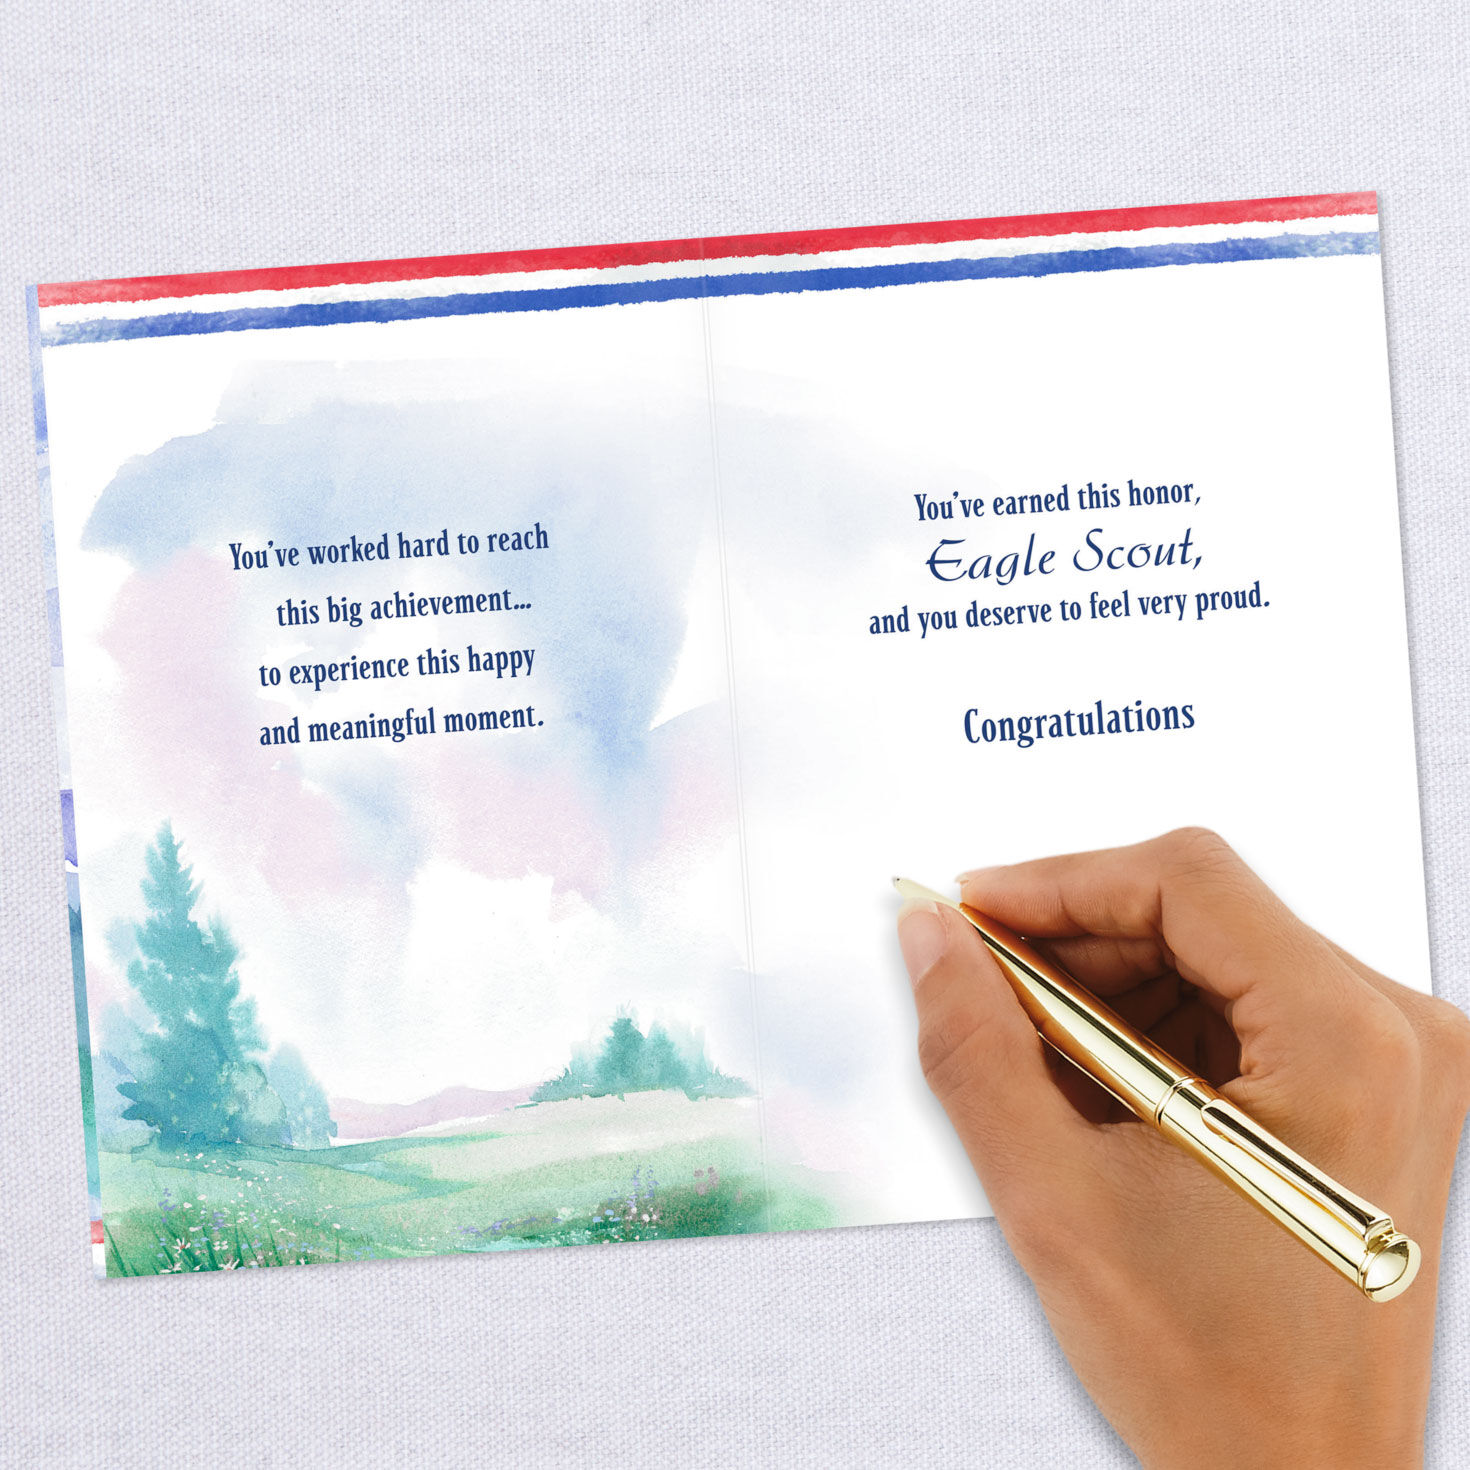 photograph regarding Eagle Scout Congratulations Card Printable titled A Design of Personality Eagle Scout Congratulations Card